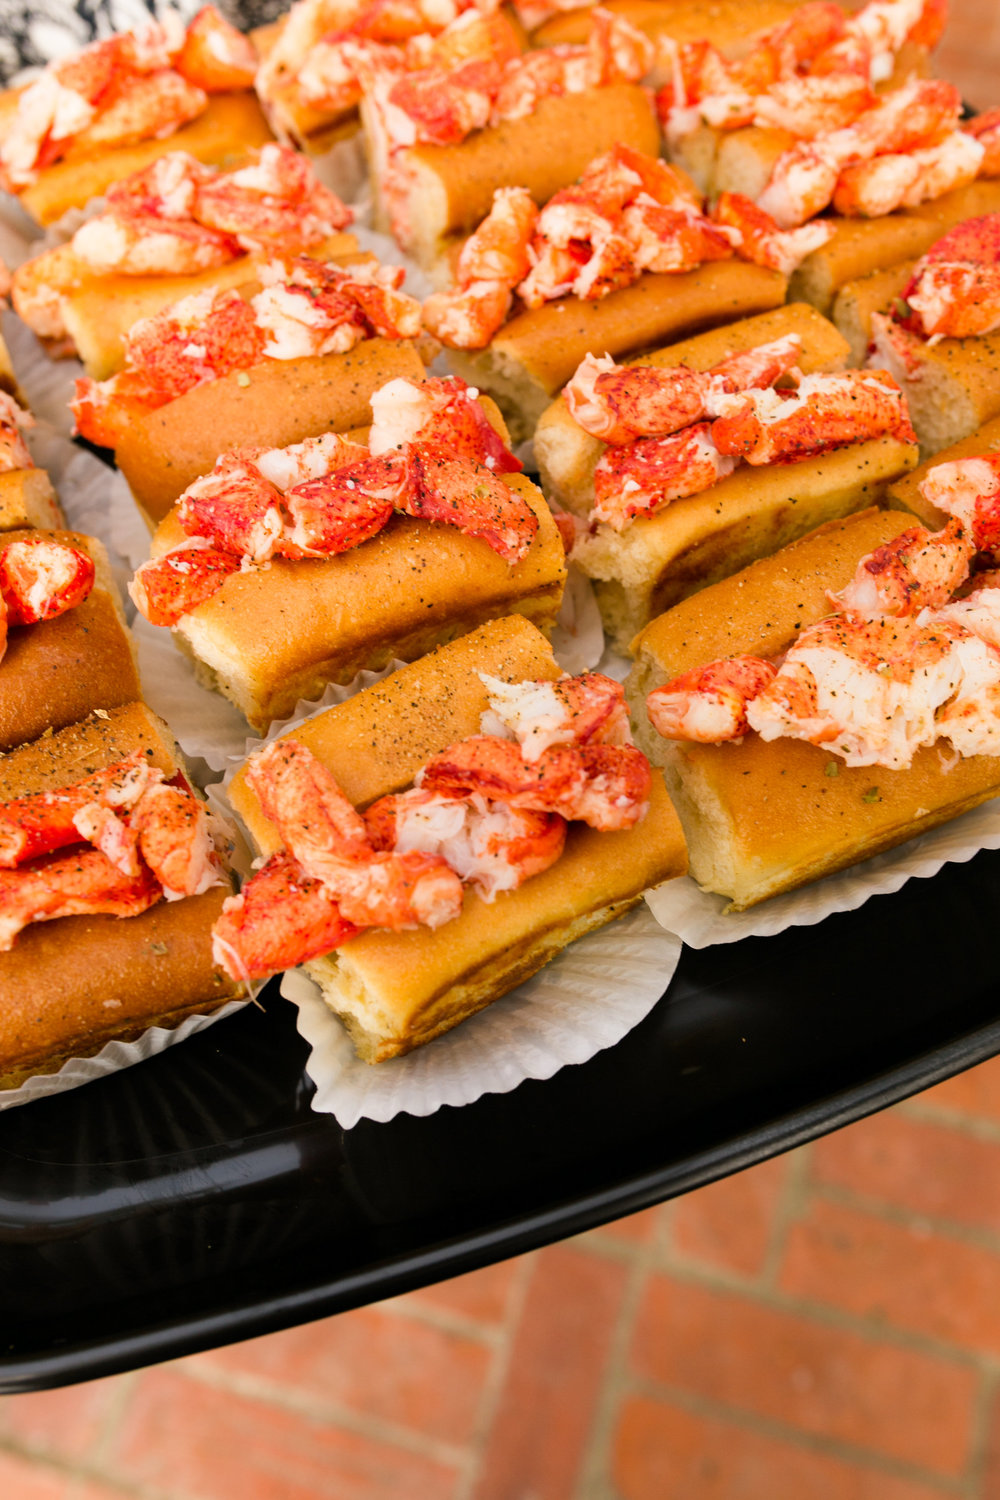 Lemonade Birthday Party Food - Lobster Rolls